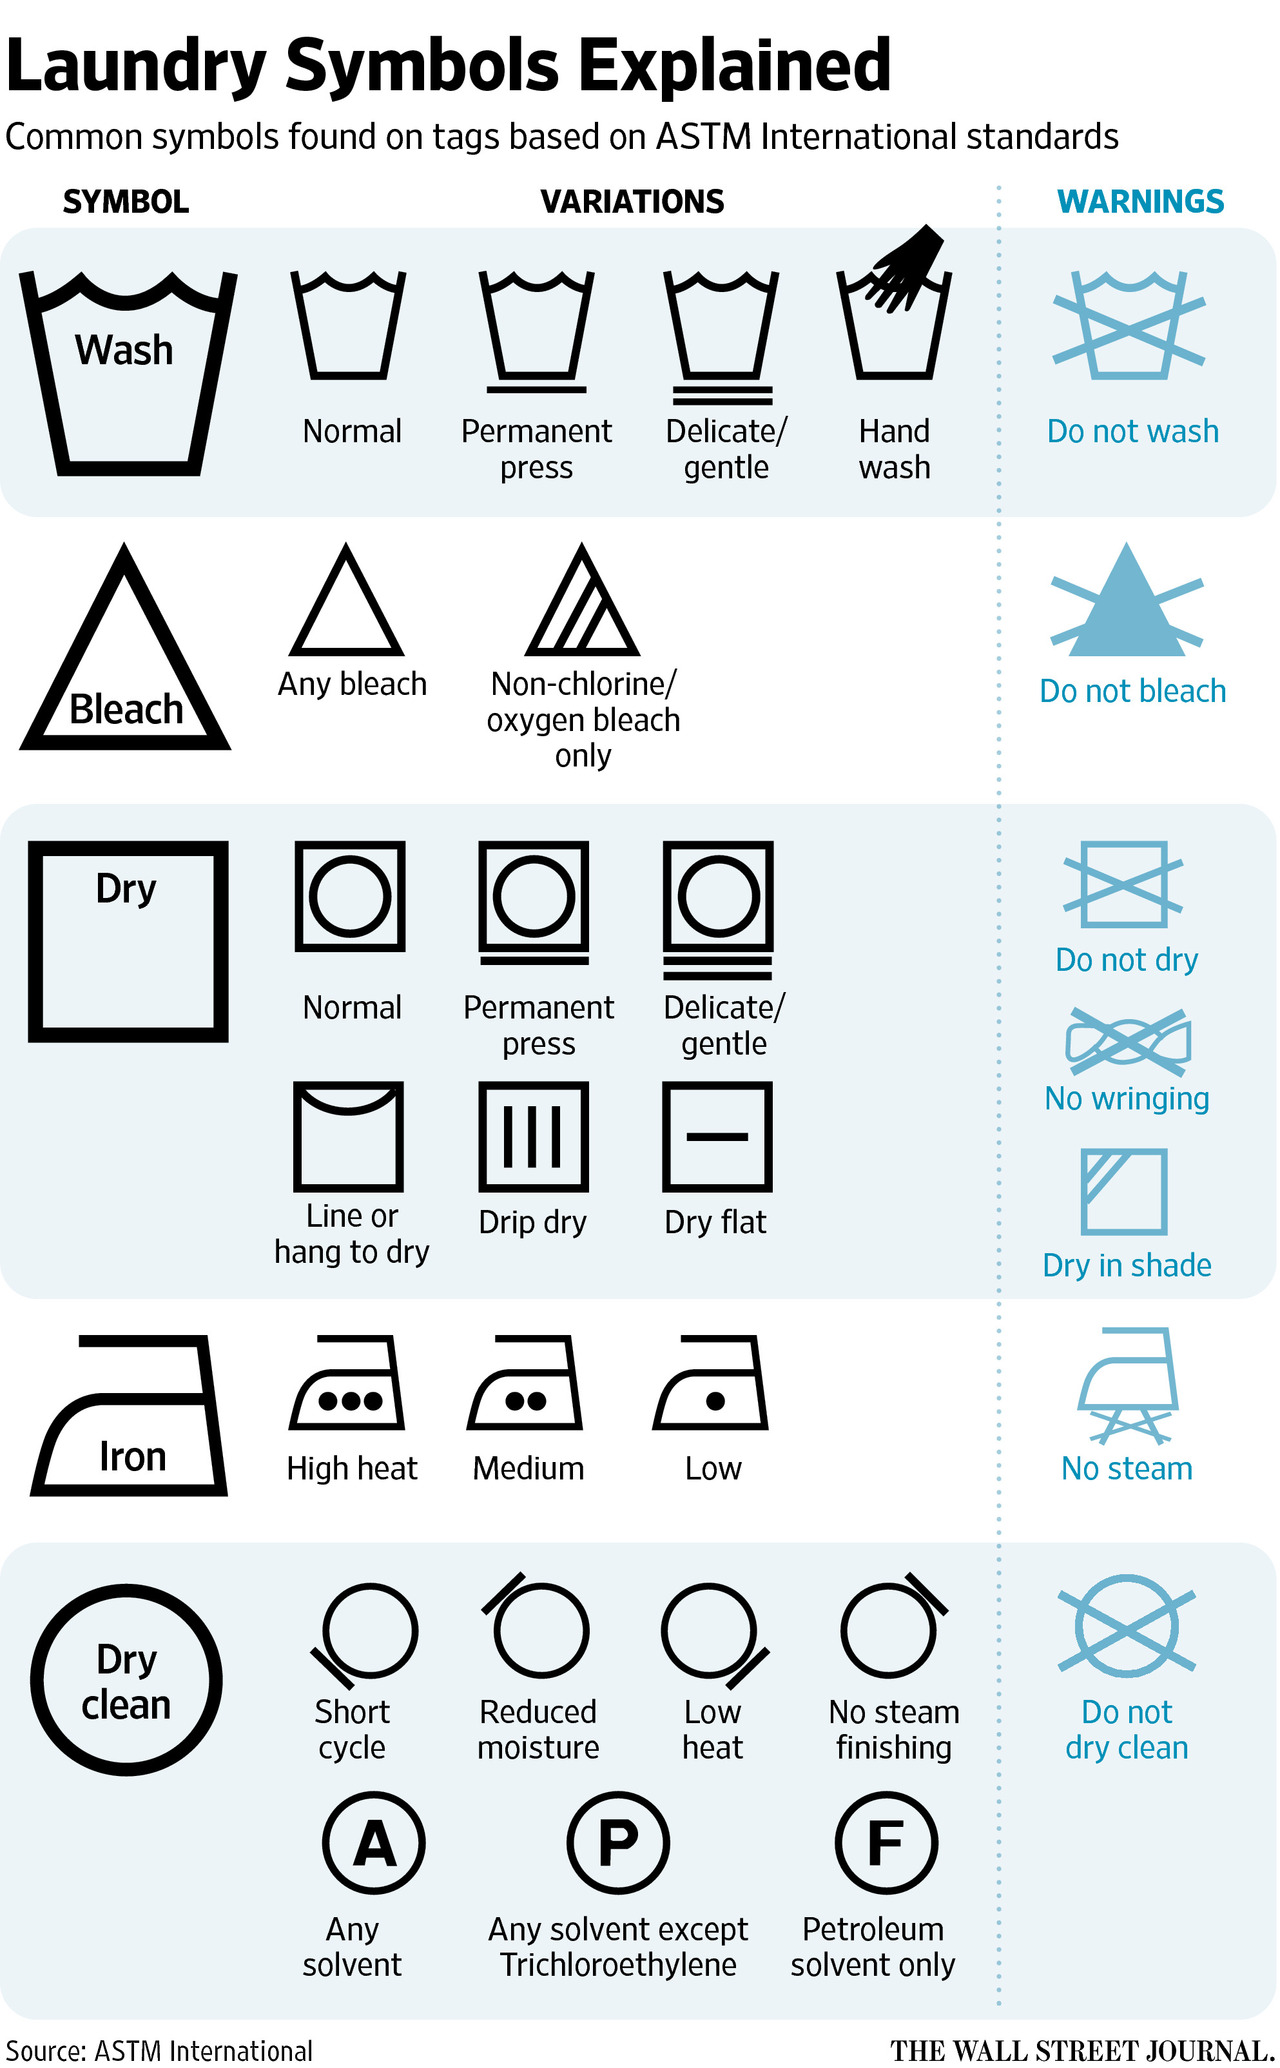 Finally A Way To Understand Those Laundry Symbols